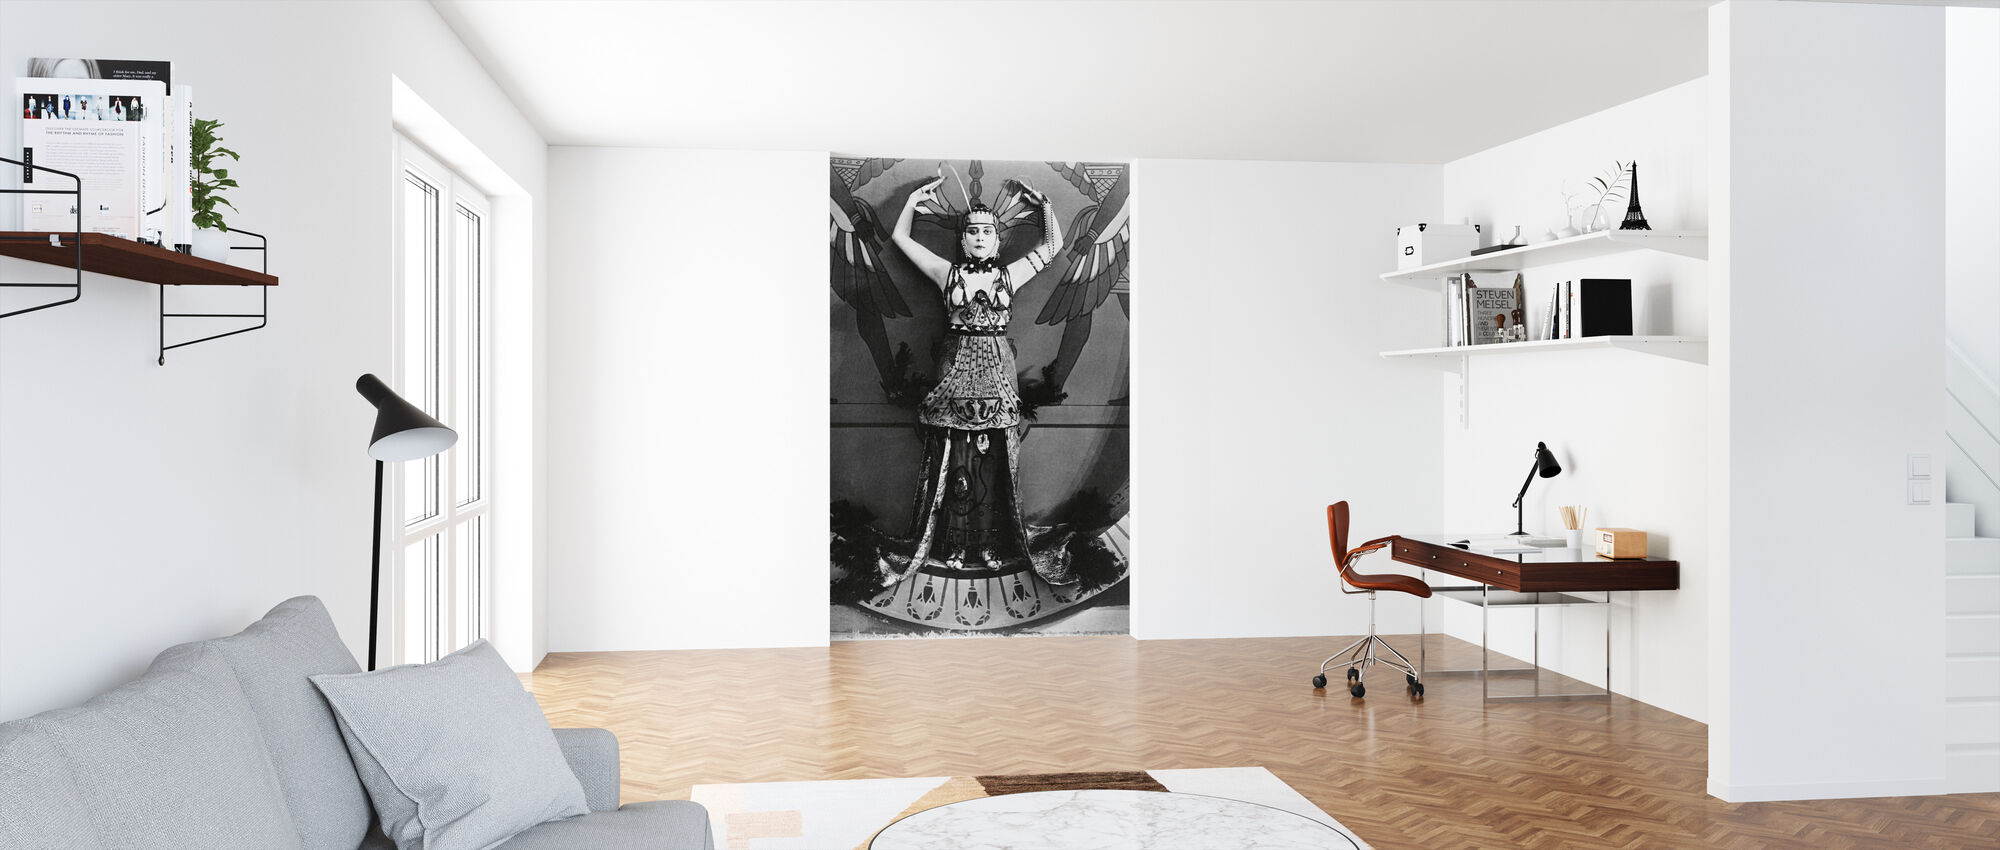 Theda Bara in Cleopatra - Wallpaper - Office